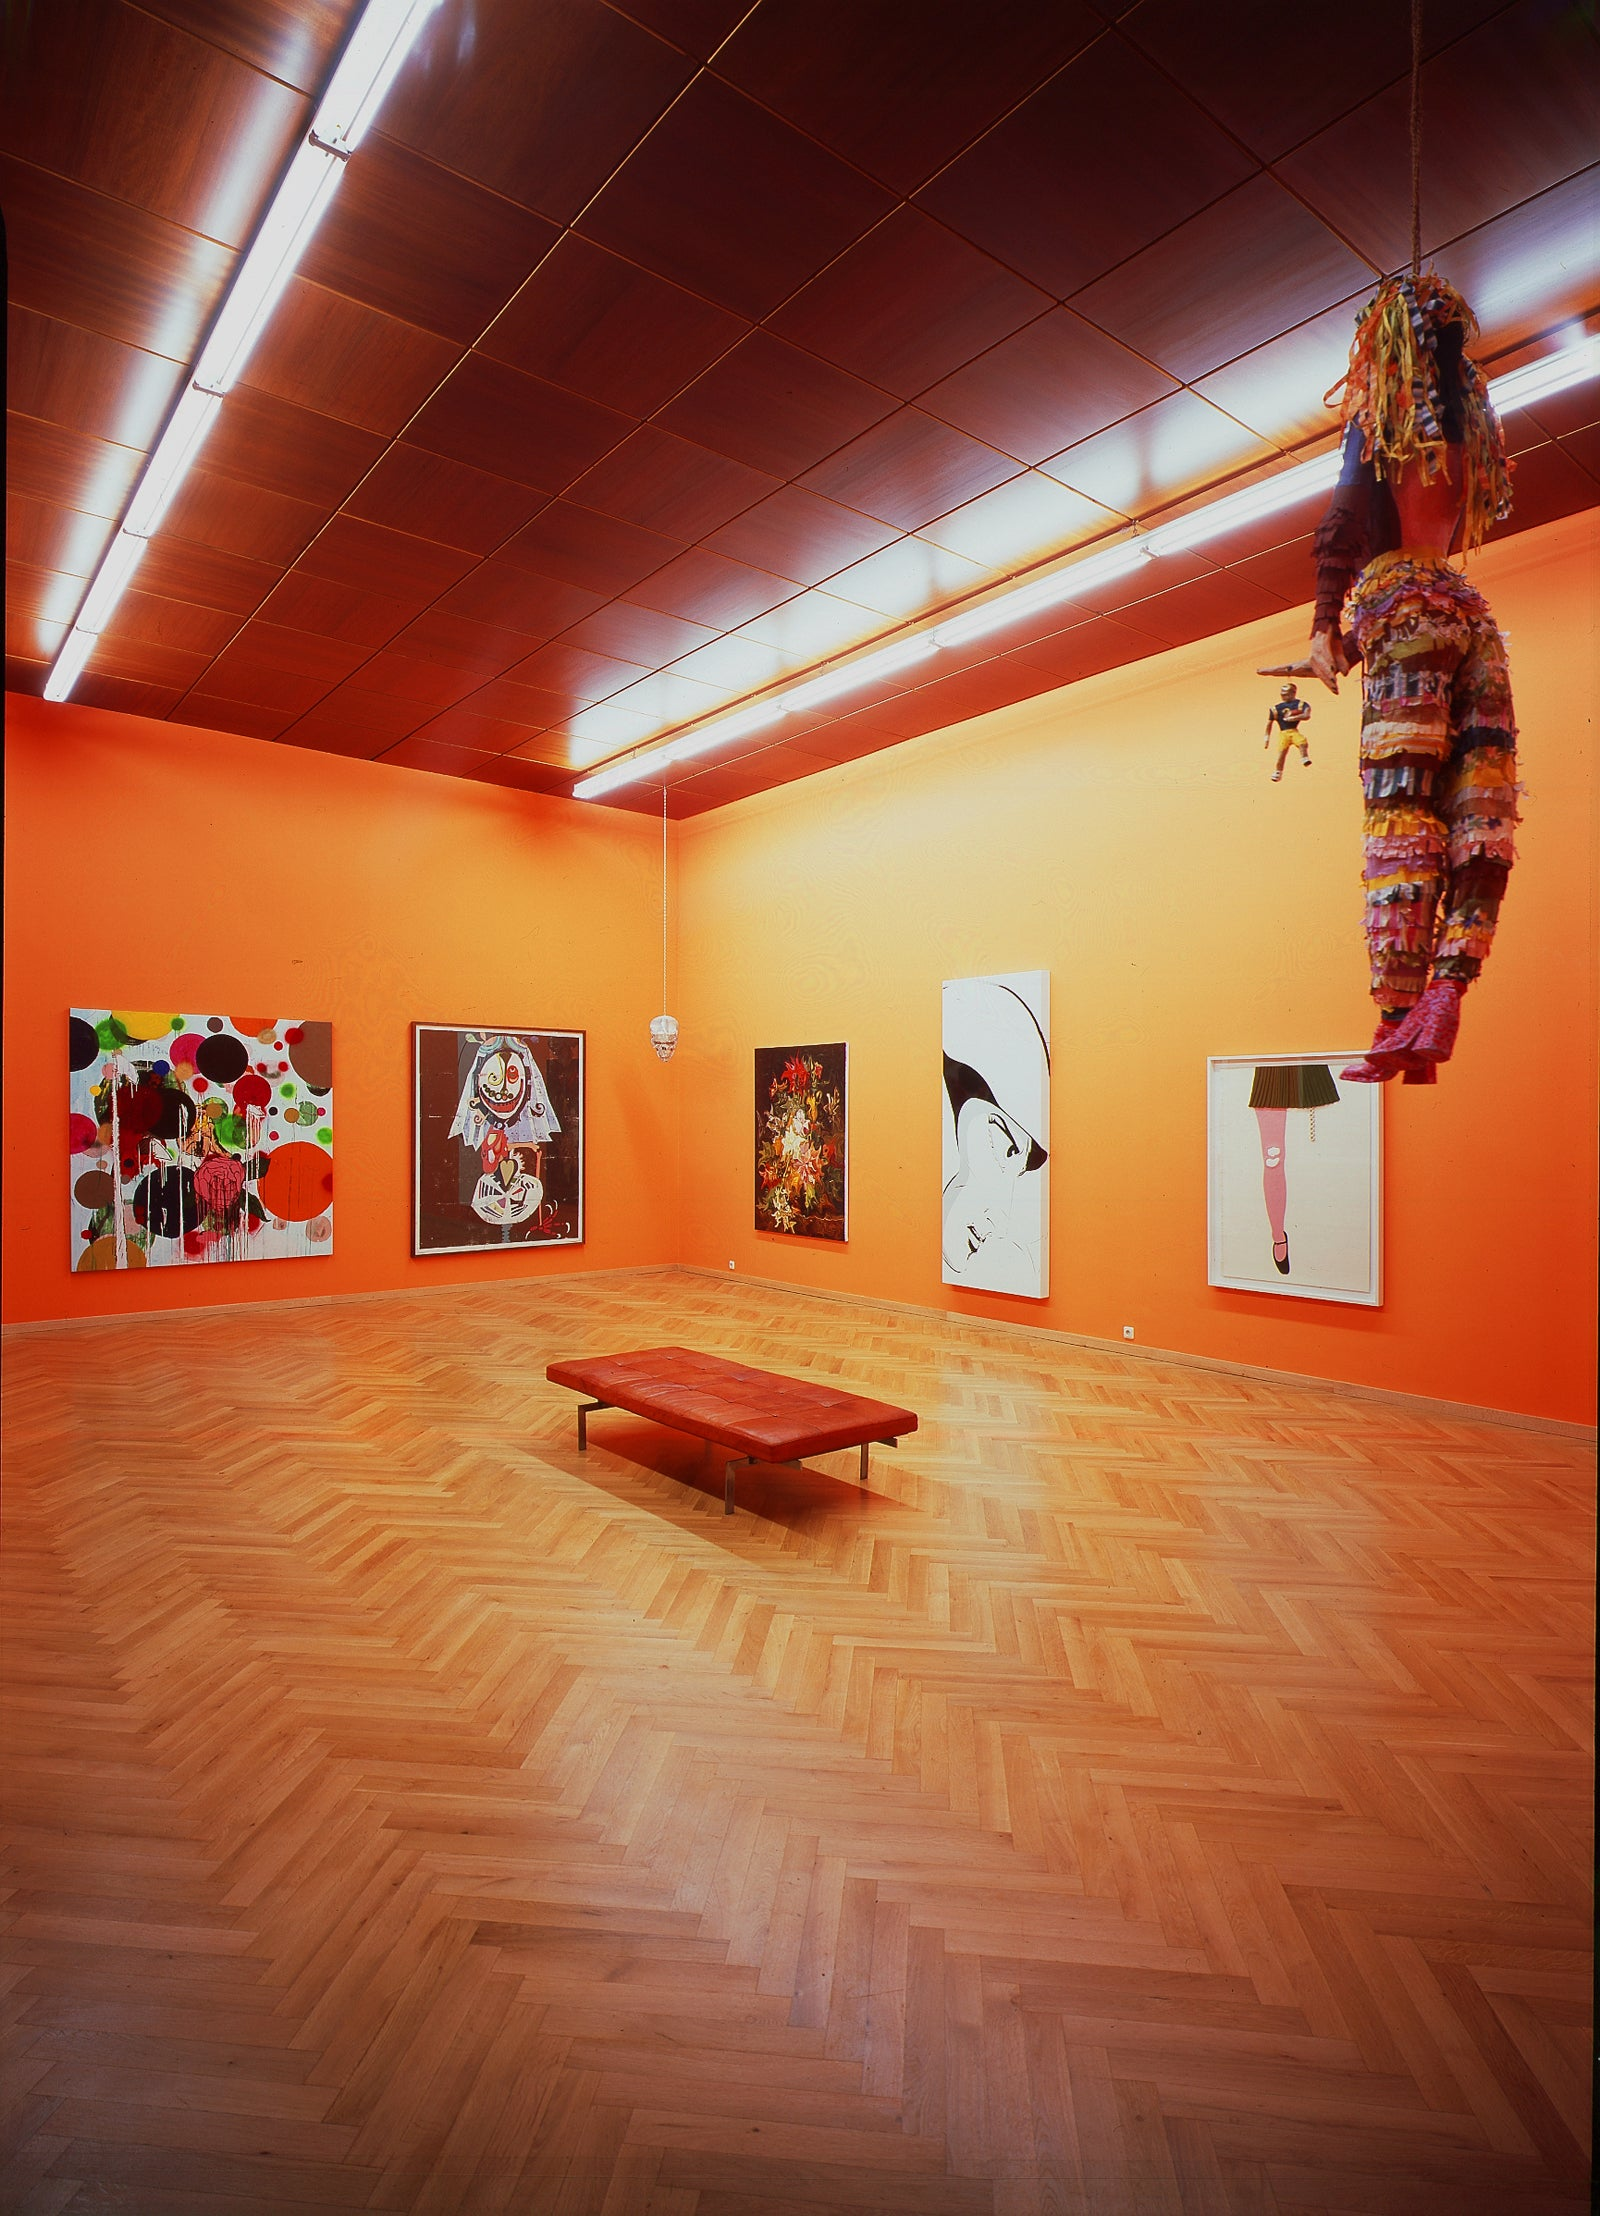 10YEARS!, Gallery Anniversary Groupshow, Installation view, 2005, Galerie Michael Janssen, Cologne